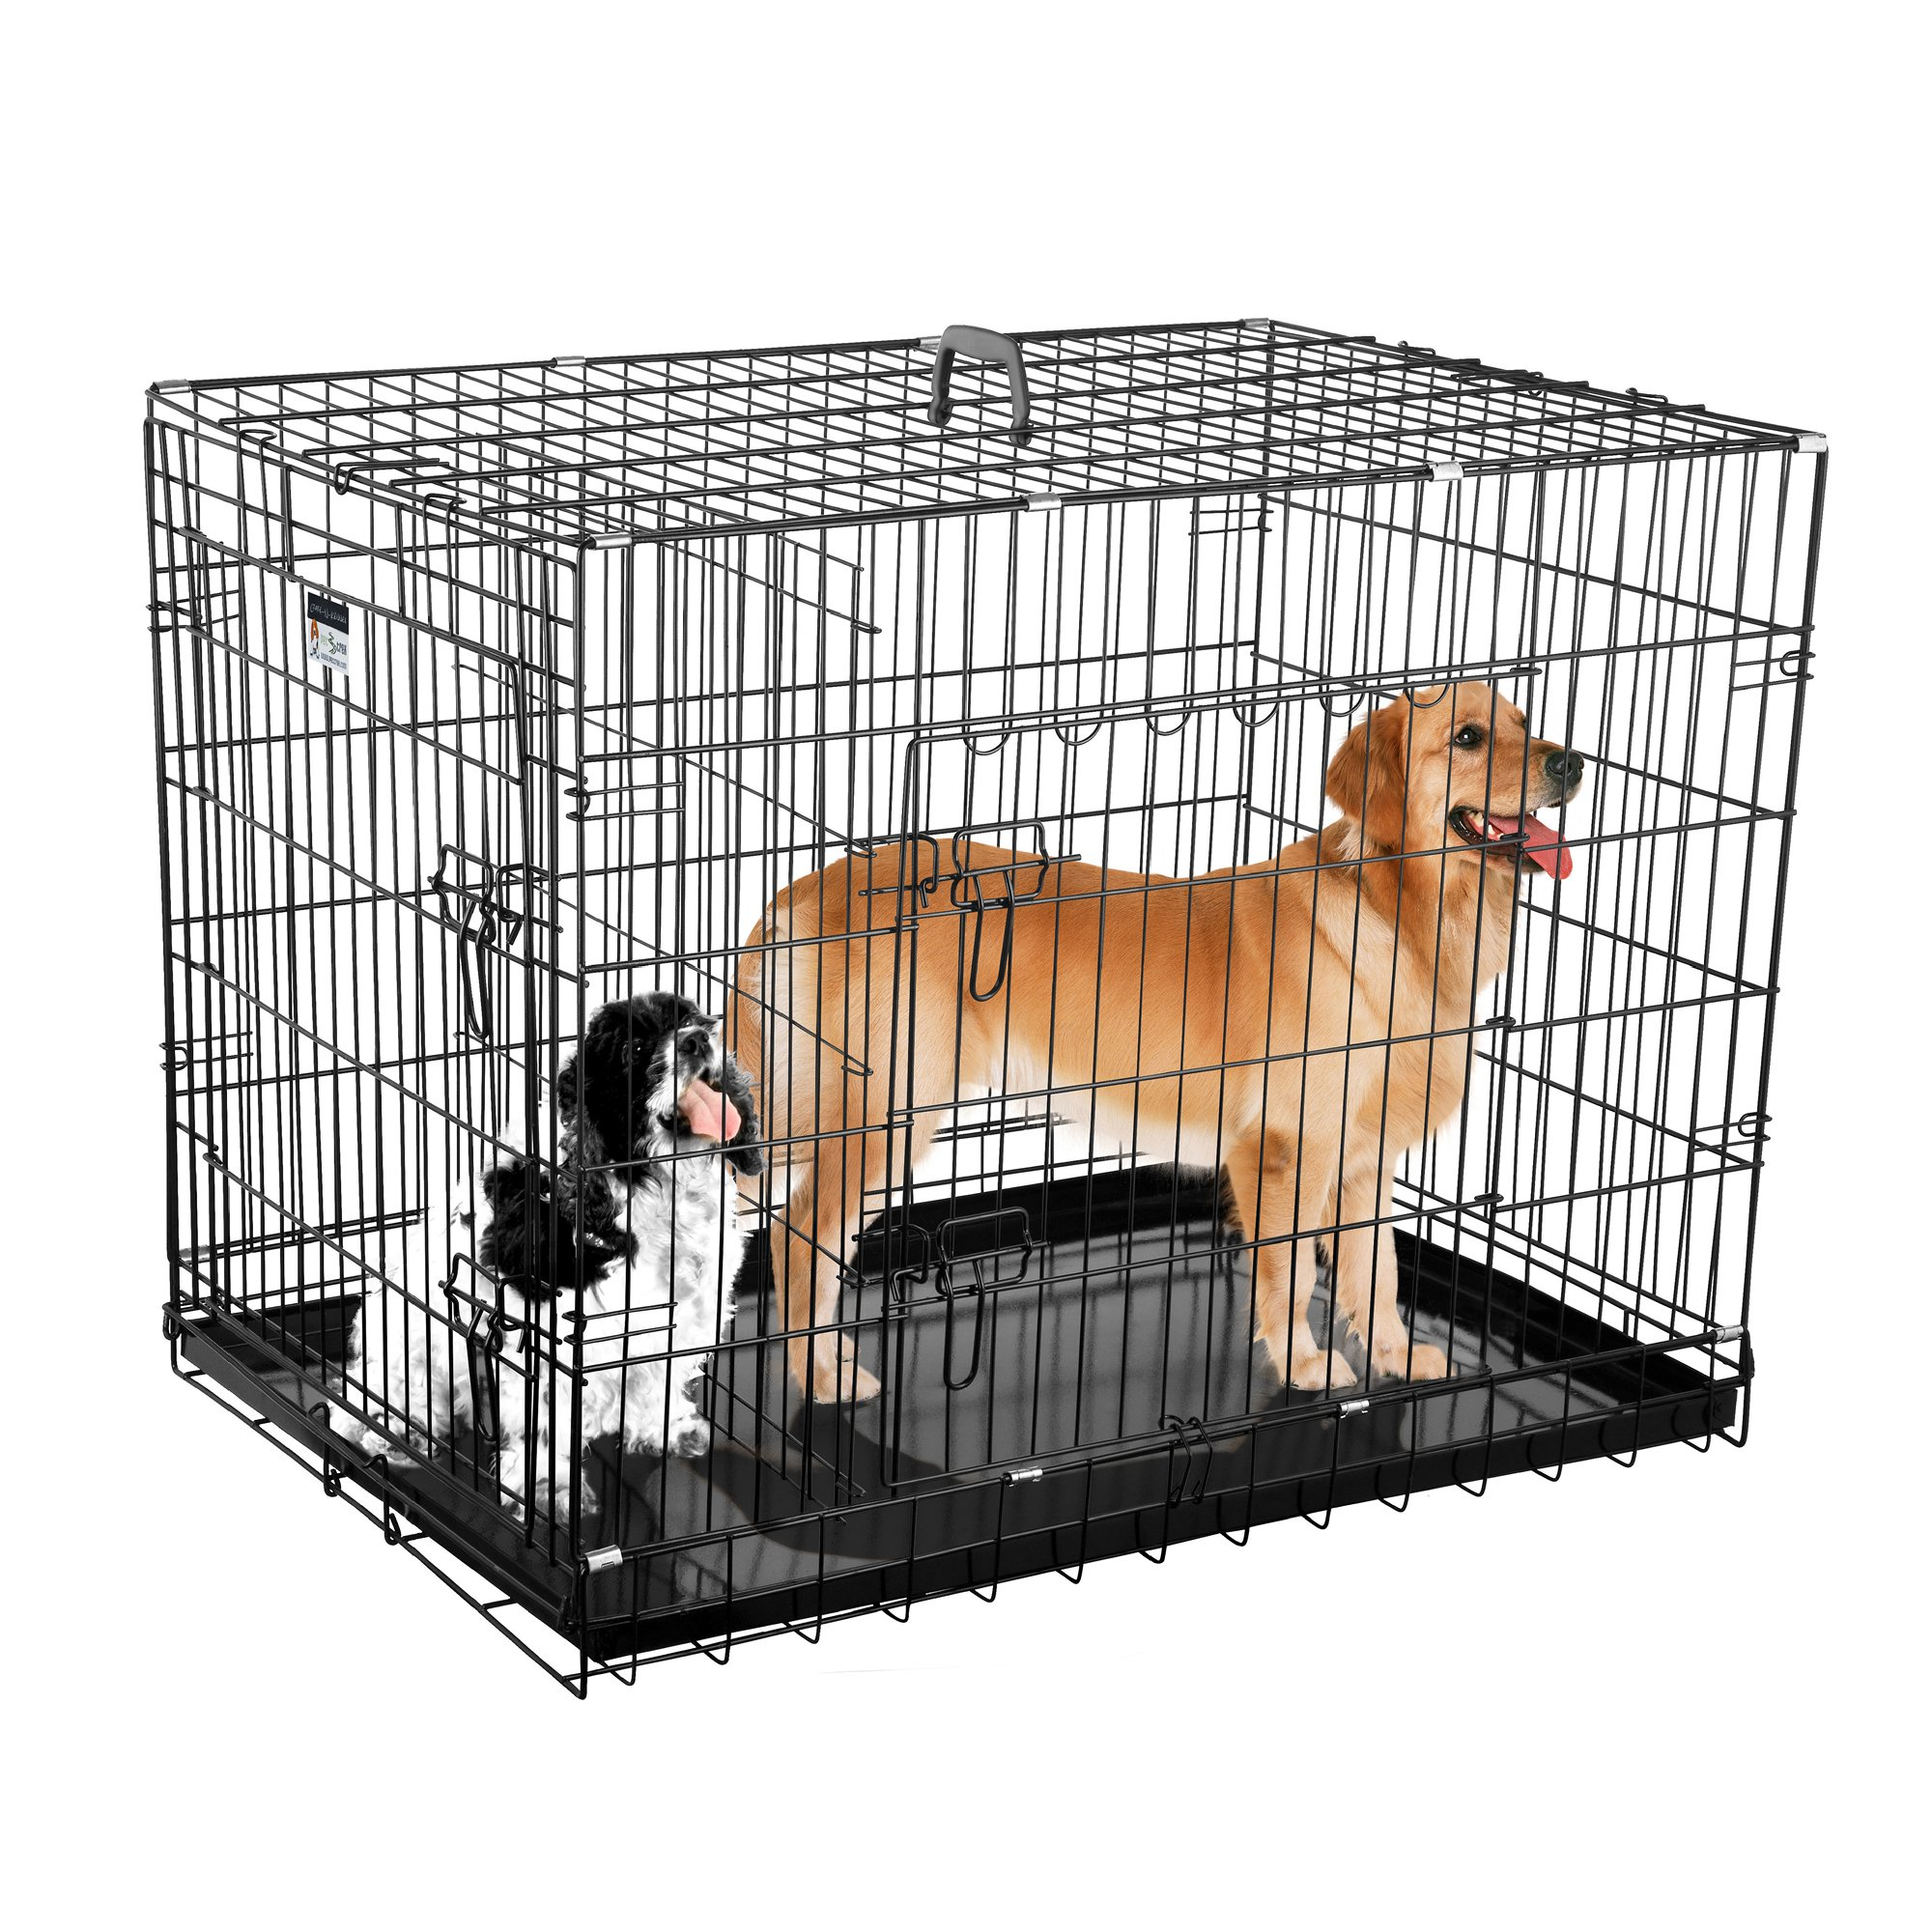 2202 Pet Trex Premium 36'' Folding Pet Crate Kennel Wire Cage for Dogs Cats or Rabbits by Pet Trex